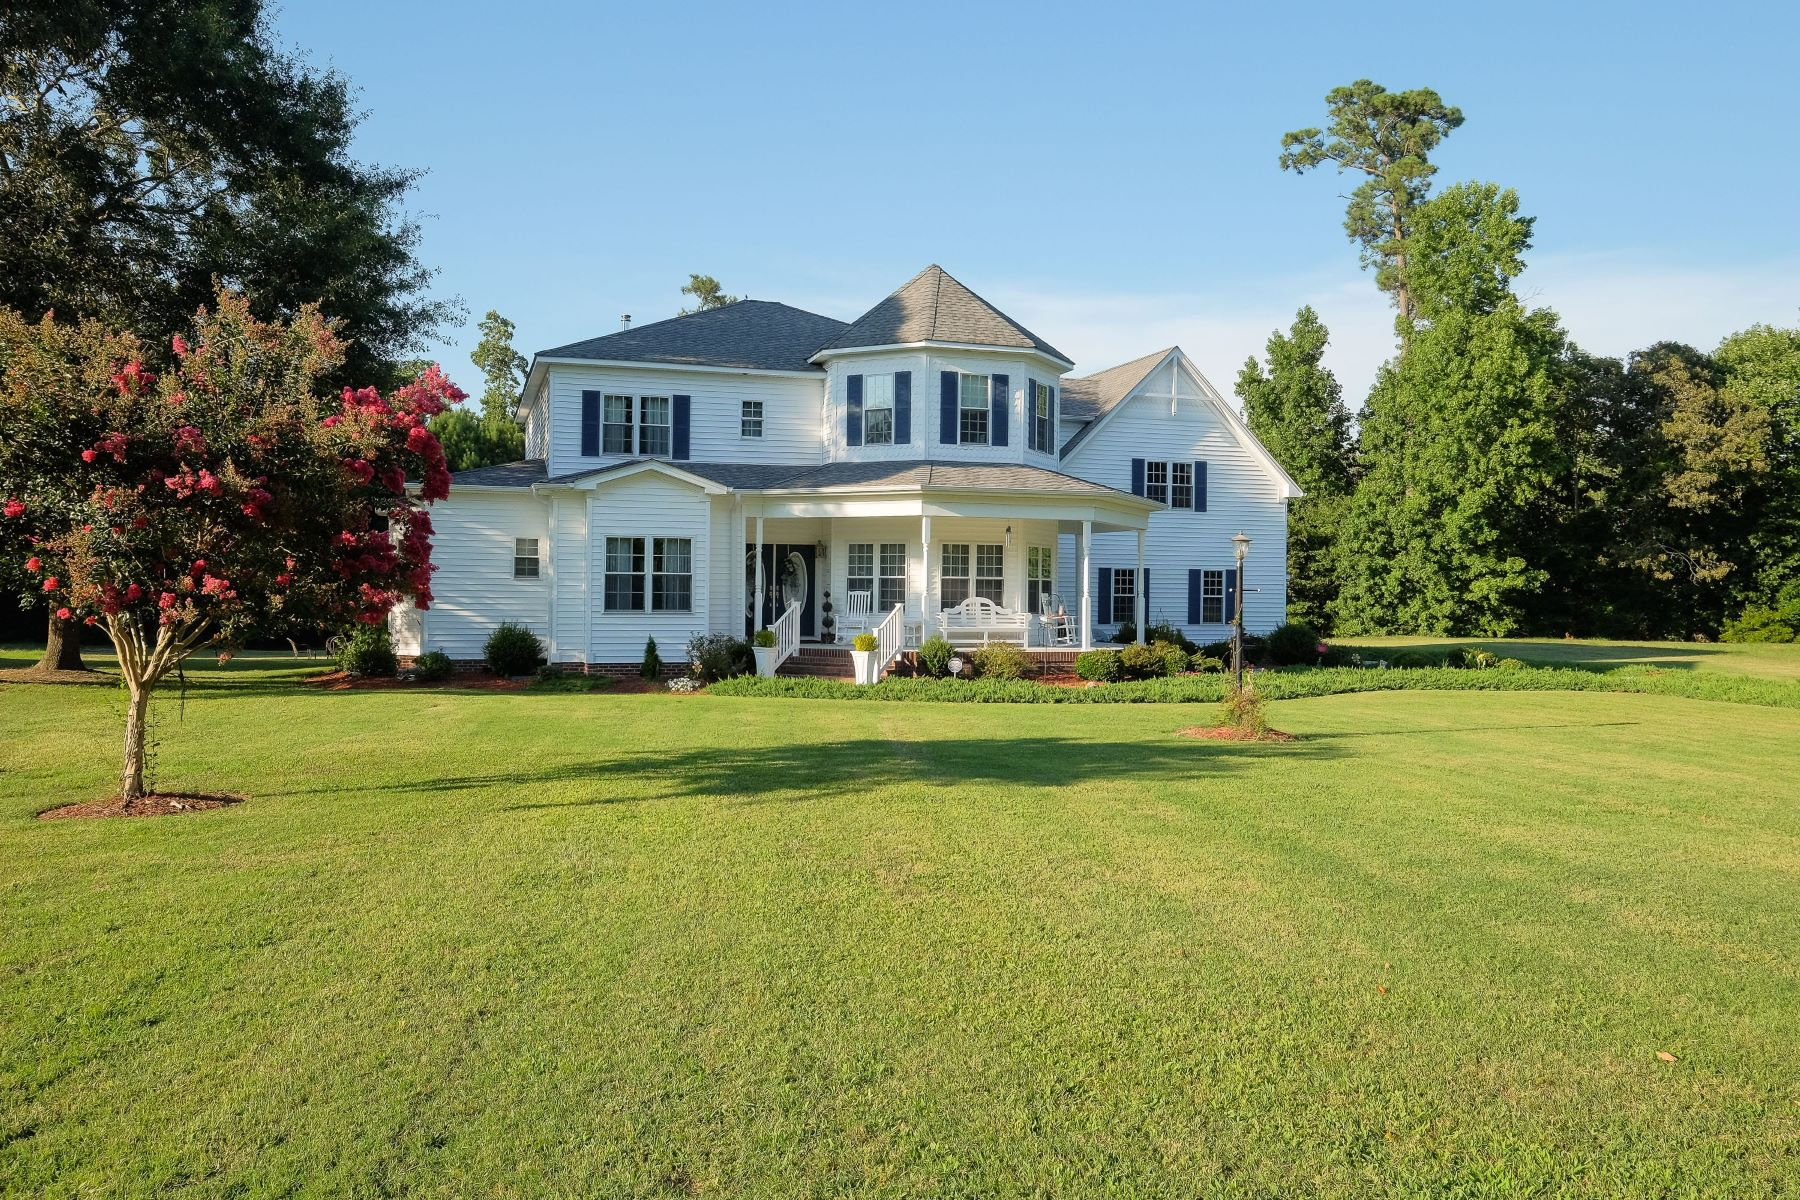 Single Family Homes for Sale at SPACIOUS VICTORIAN HOME IN GATED COMMUNITY 137 Lake Wood Dr Edenton, North Carolina 27932 United States